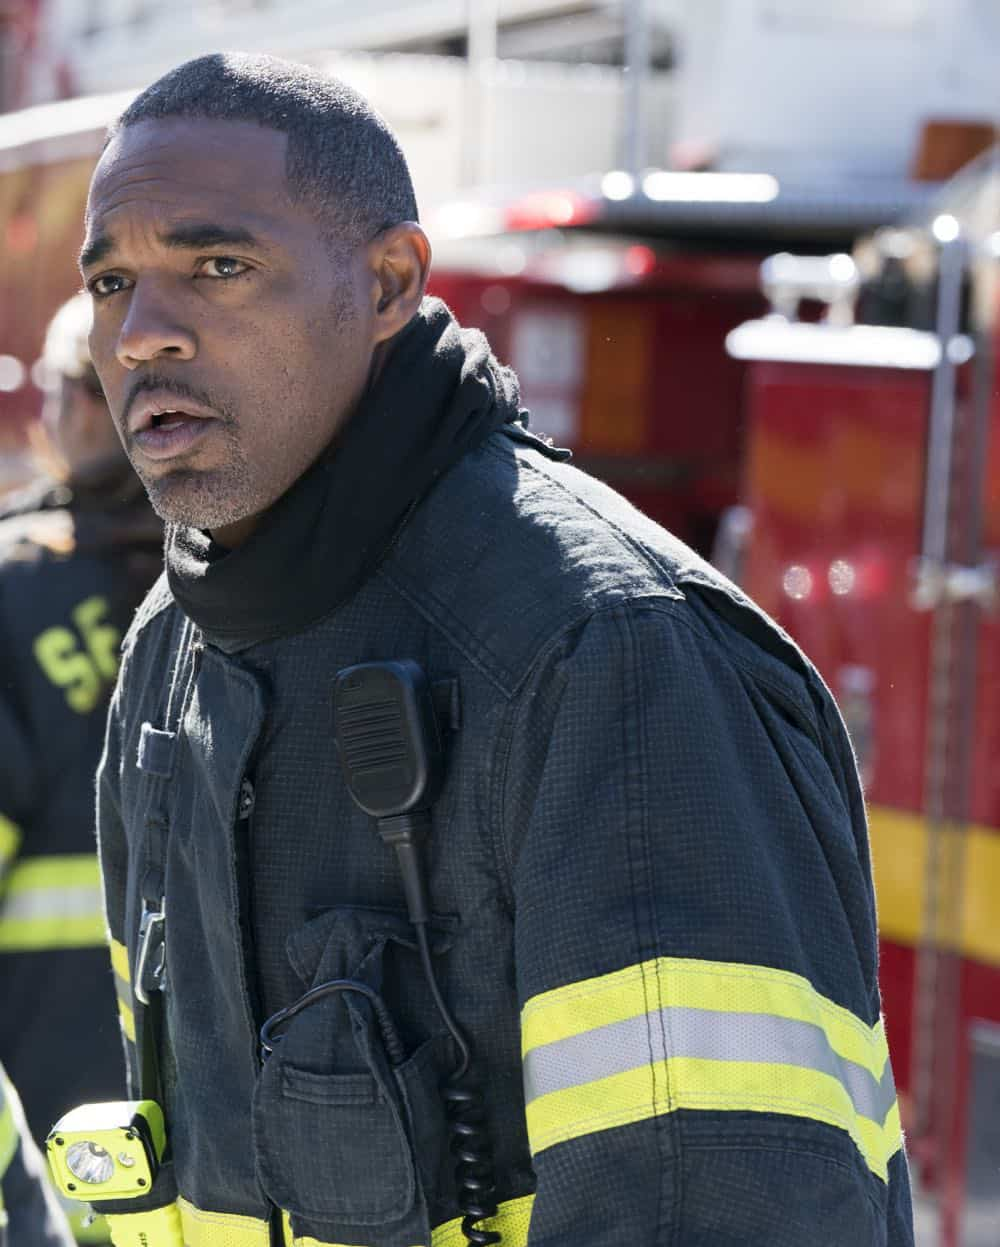 Station 19 Episode 8 Season 1 Every Second Counts 12